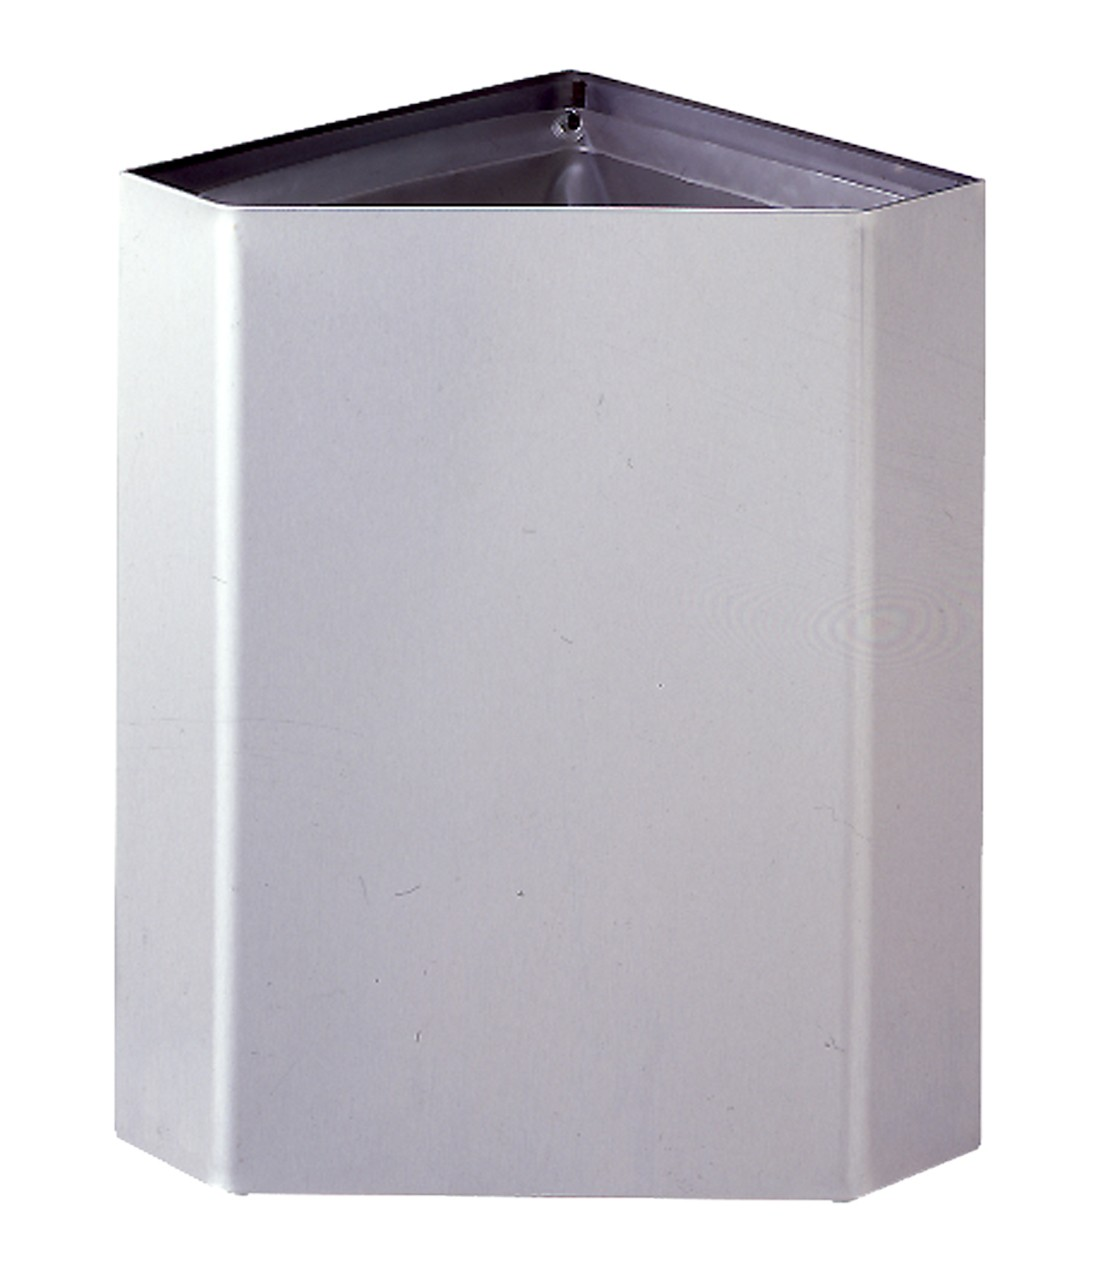 Corner Stainless Steel Trash Can Bobrick B 268 Corner Waste Receptacle Bobrick Distributor